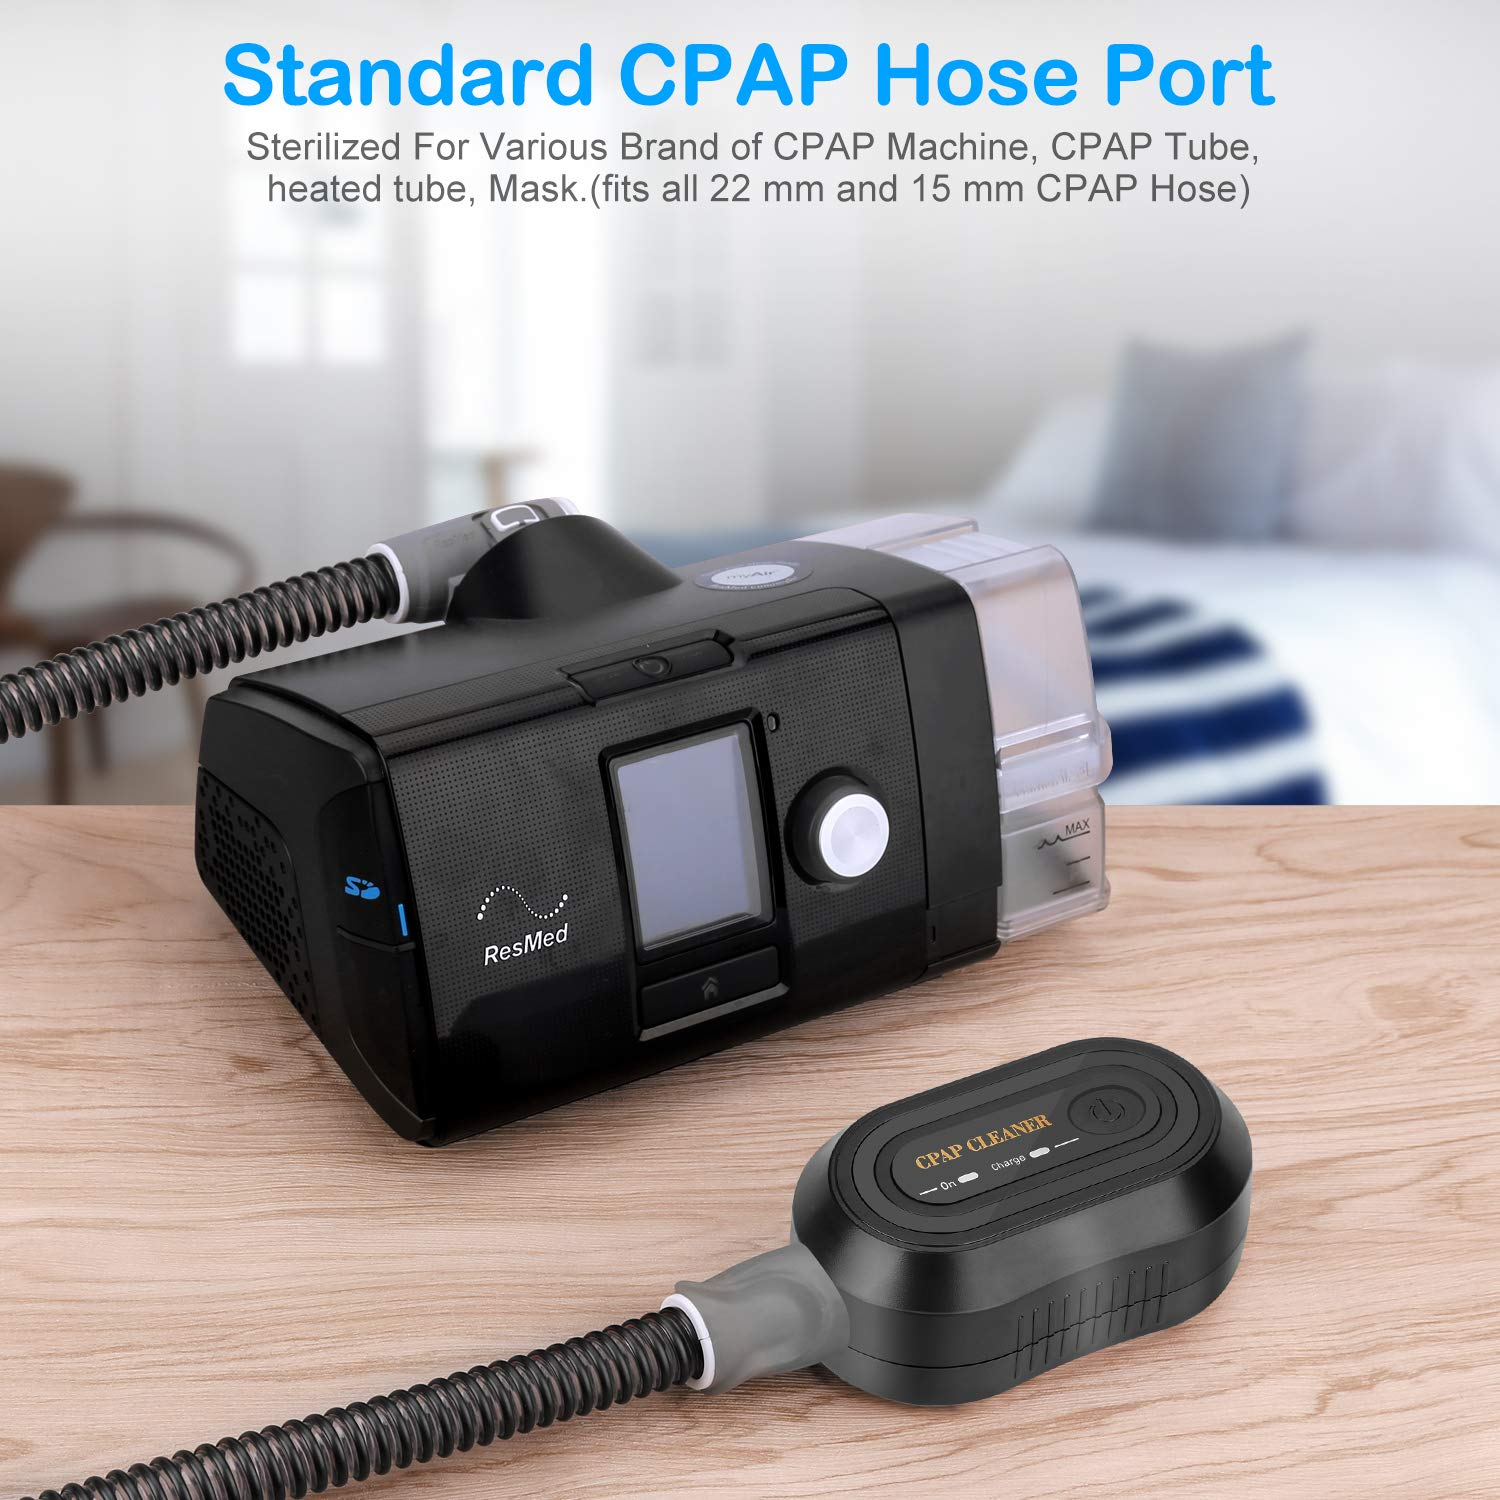 Moocoo 2019 Upgraded CPAP Cleaner - Portable Mini CPAP Cleaning machine -  Suits for CPAP Machine